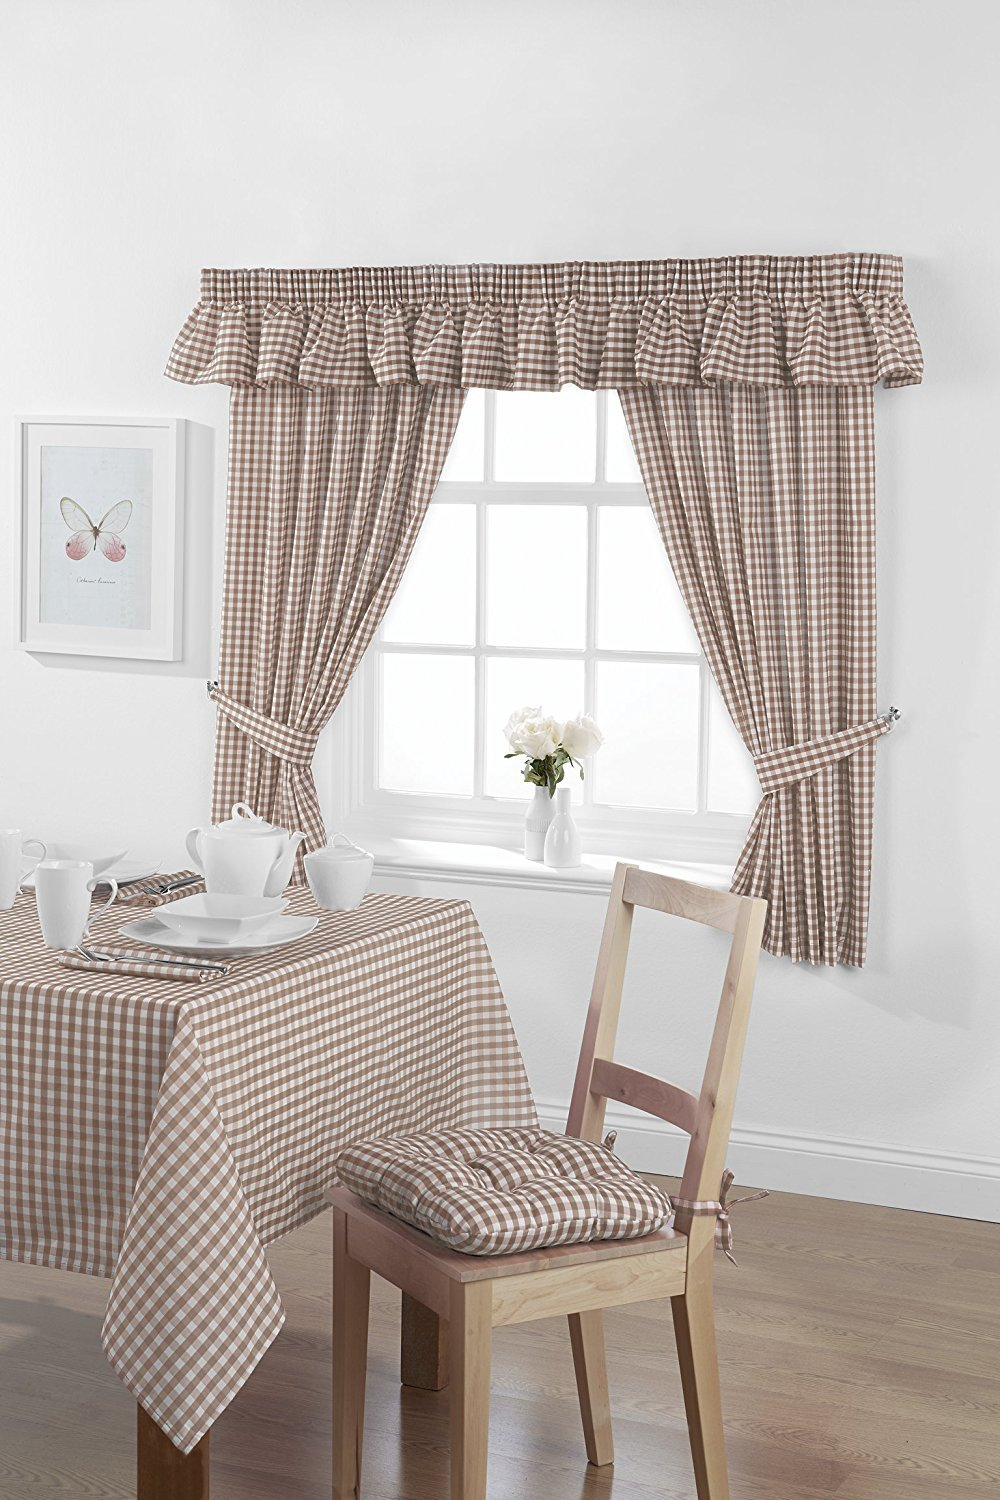 Country Look Gingham Check Oatmeal Unlined Readymade Curtain 46x42in 116x107cms Approximately Includes Tie